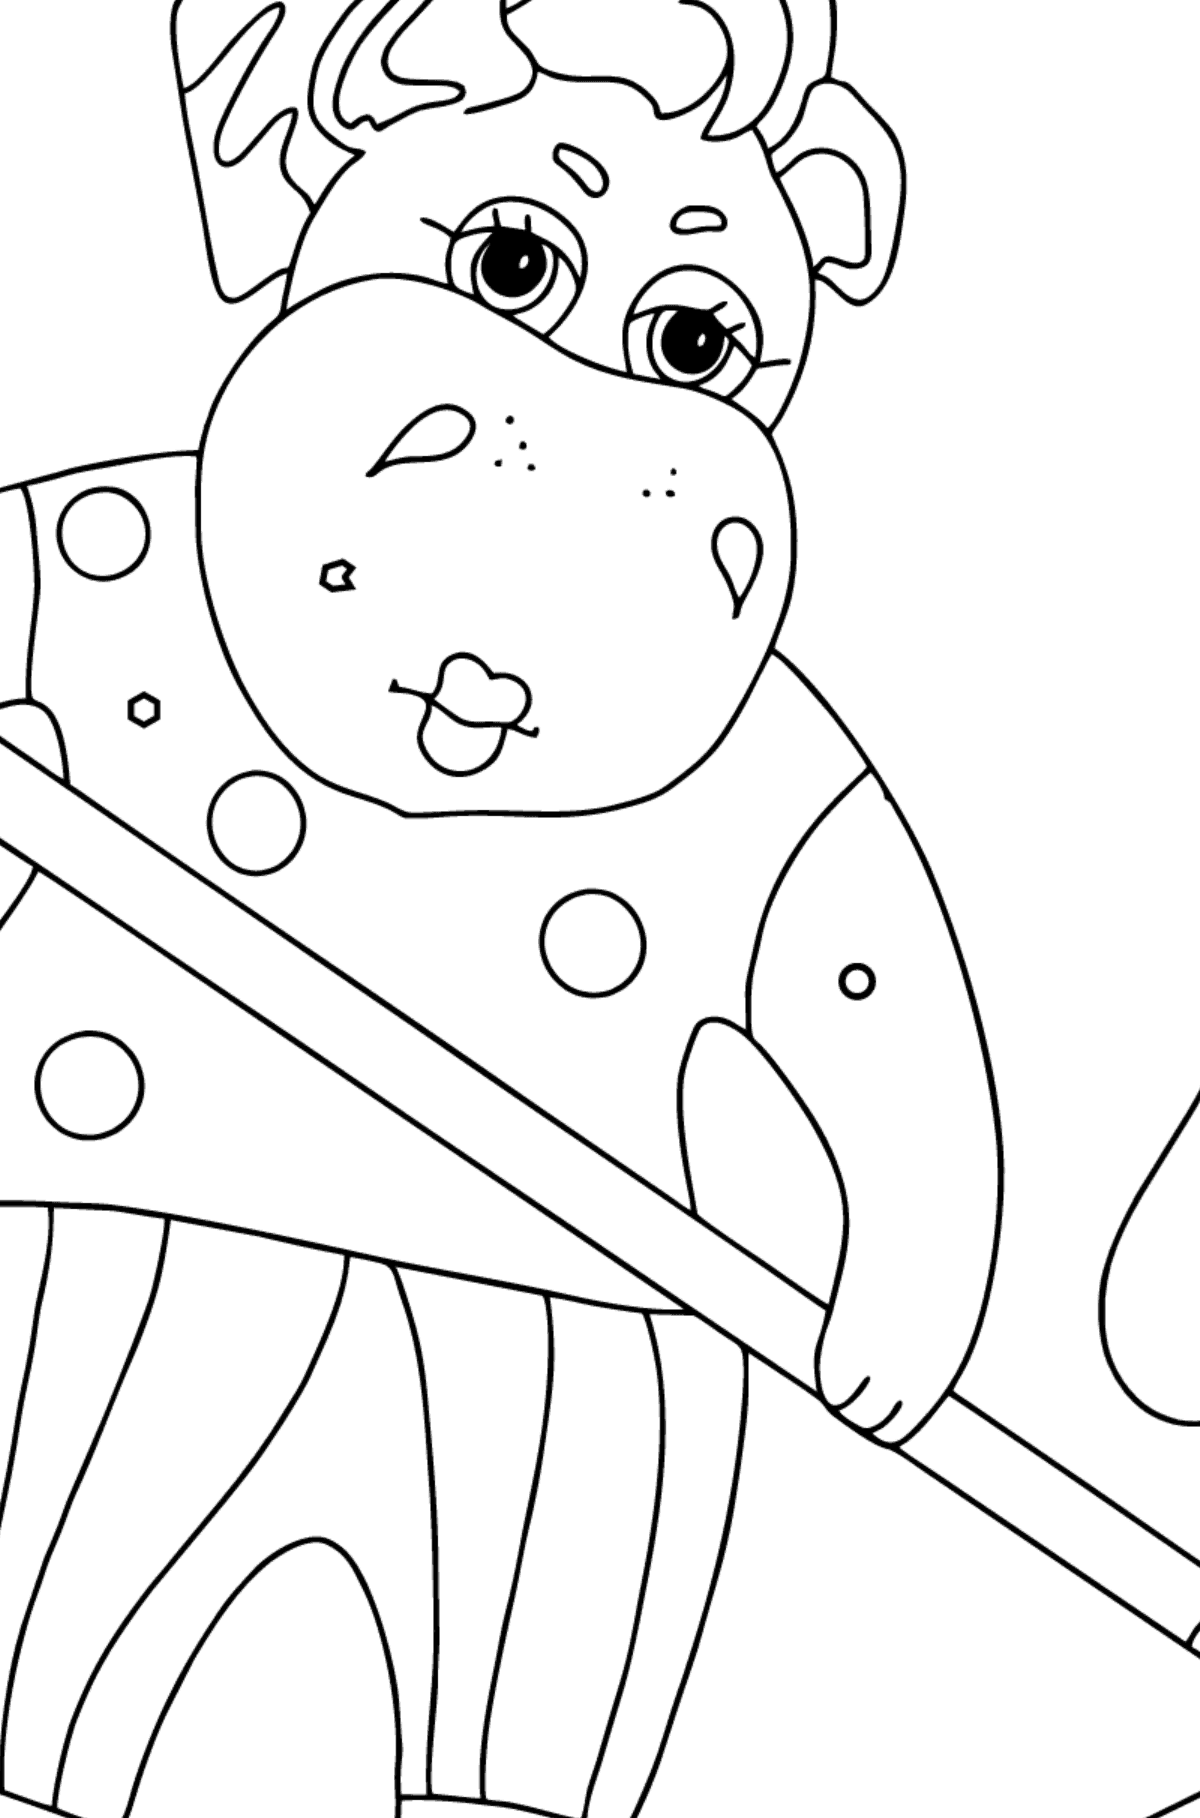 Coloring Page - A Hippo is Collecting Fallen Leaves for Kids  - Color by Geometric Shapes